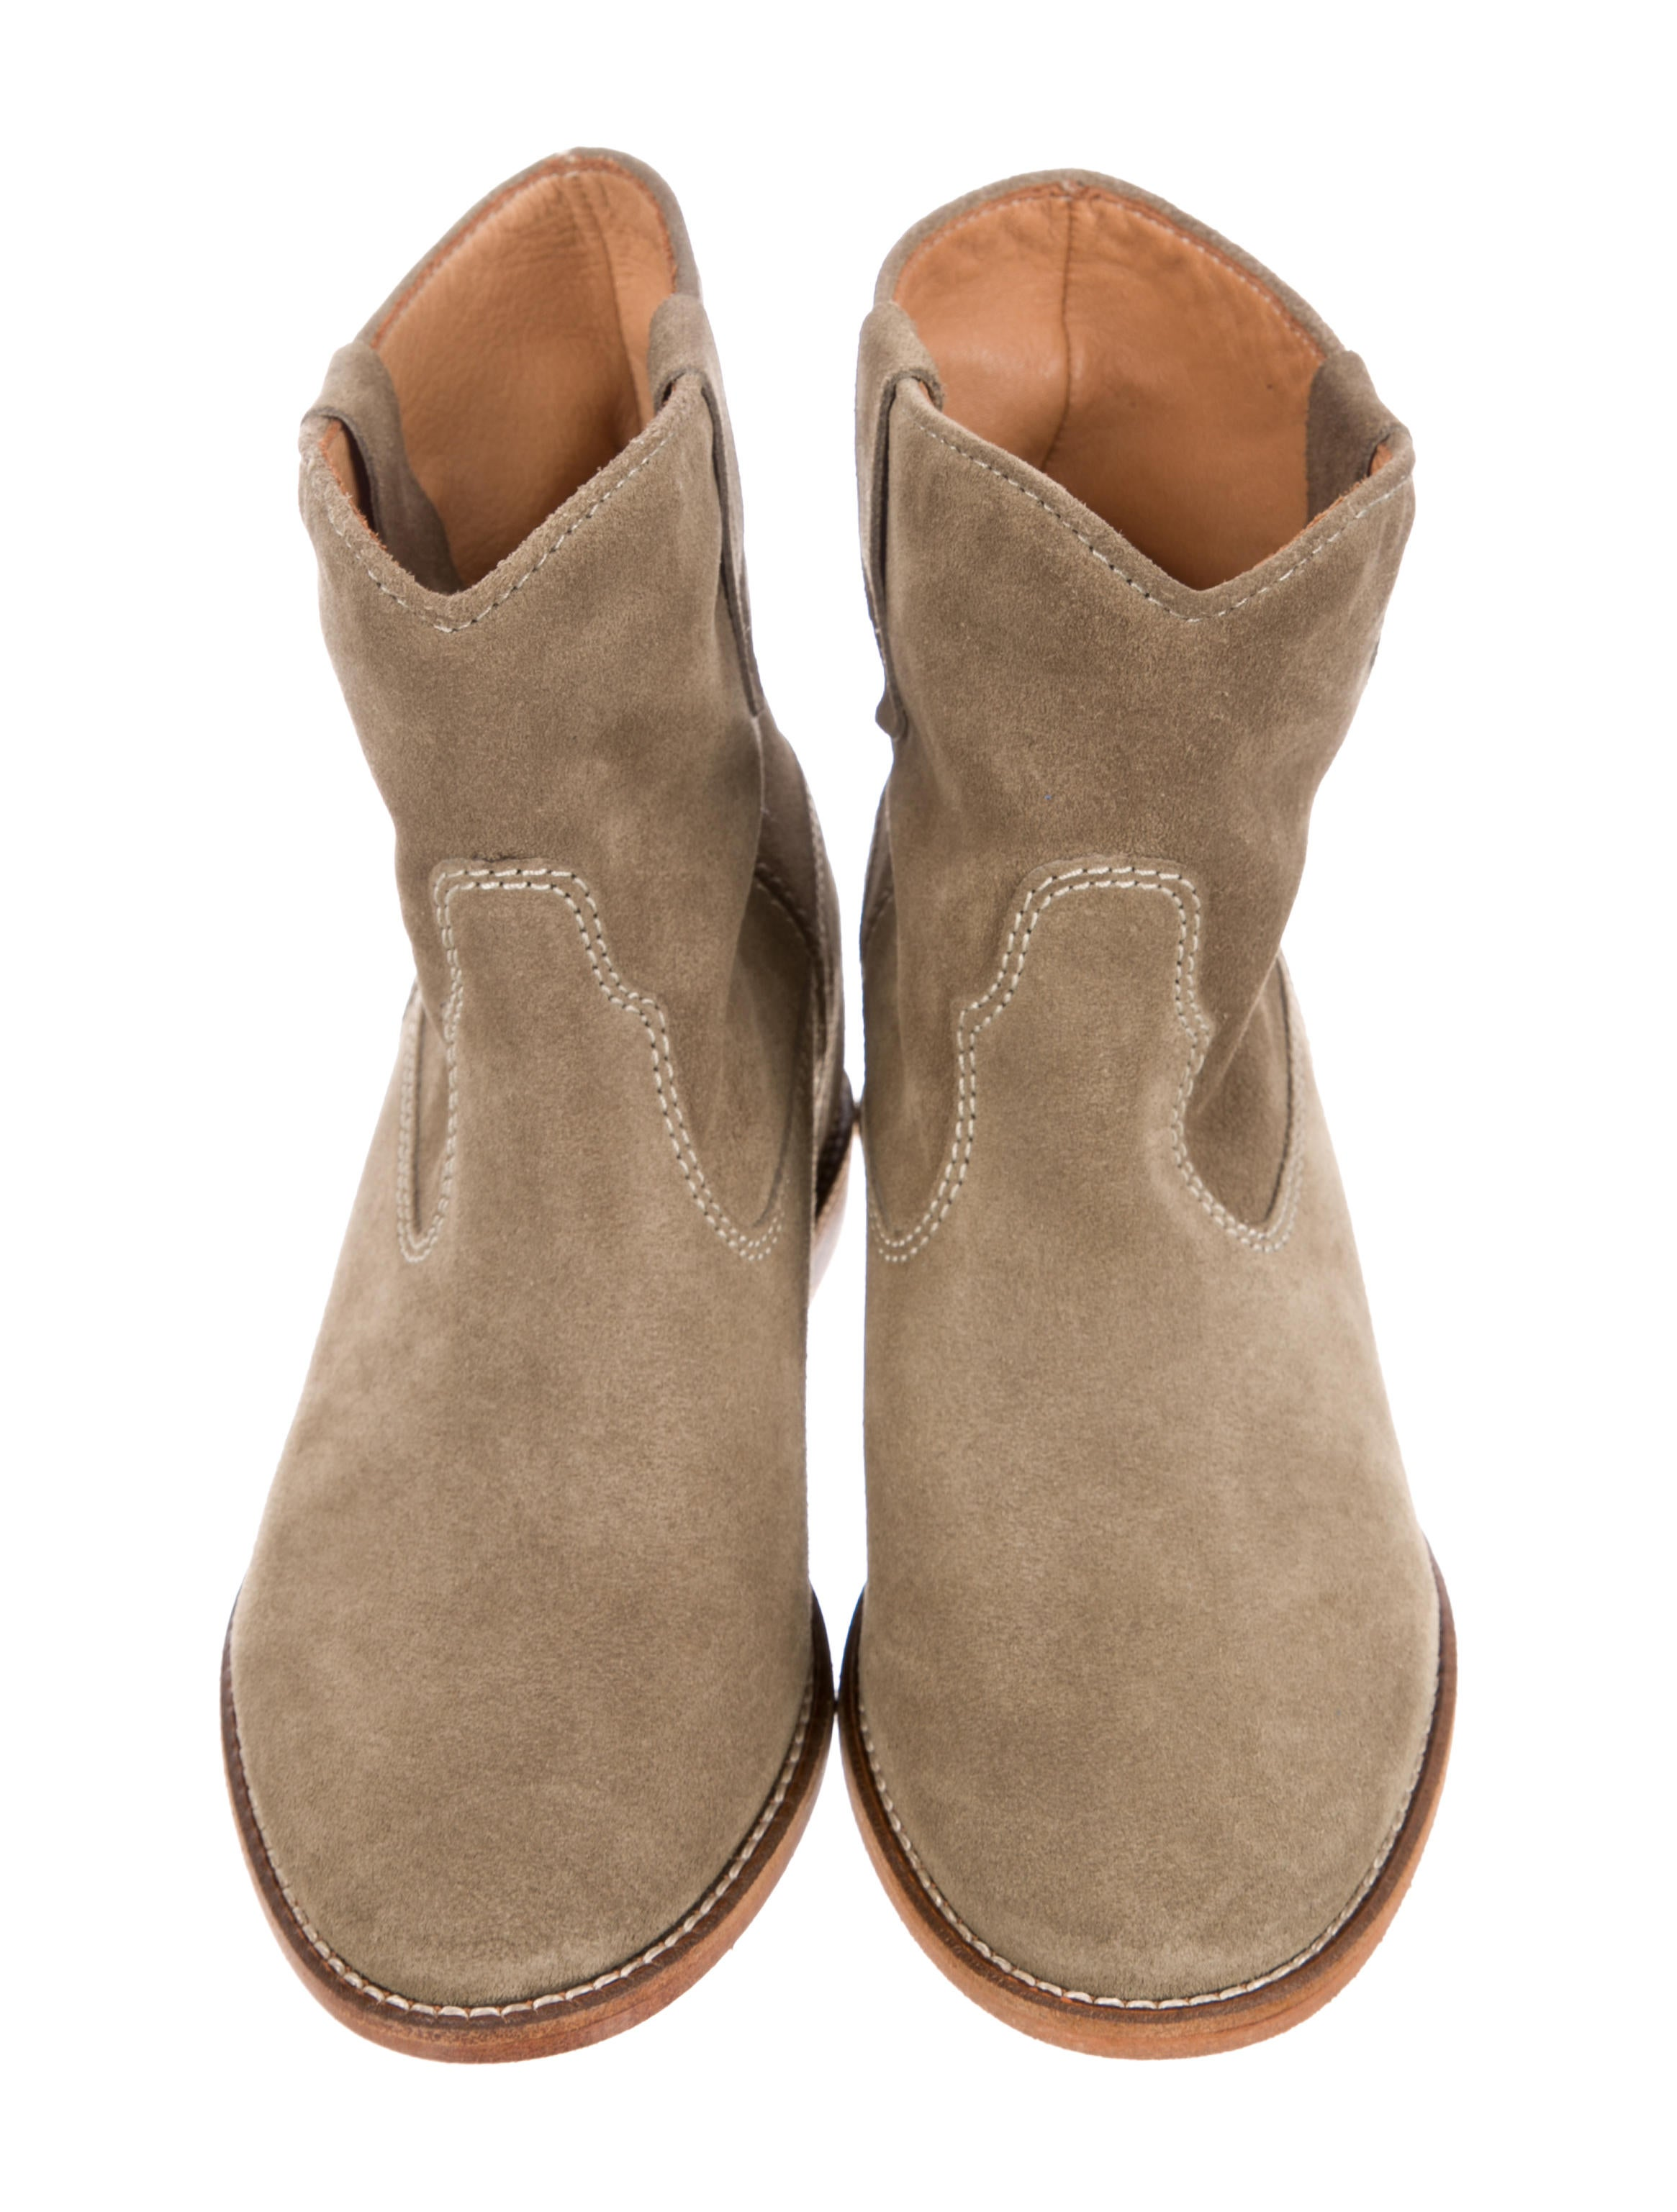 Isabel Marant Suede Crisi Ankle Boots w/ Tags brand new unisex sale online sale clearance cheap 2014 new discount Manchester discount high quality 21rud